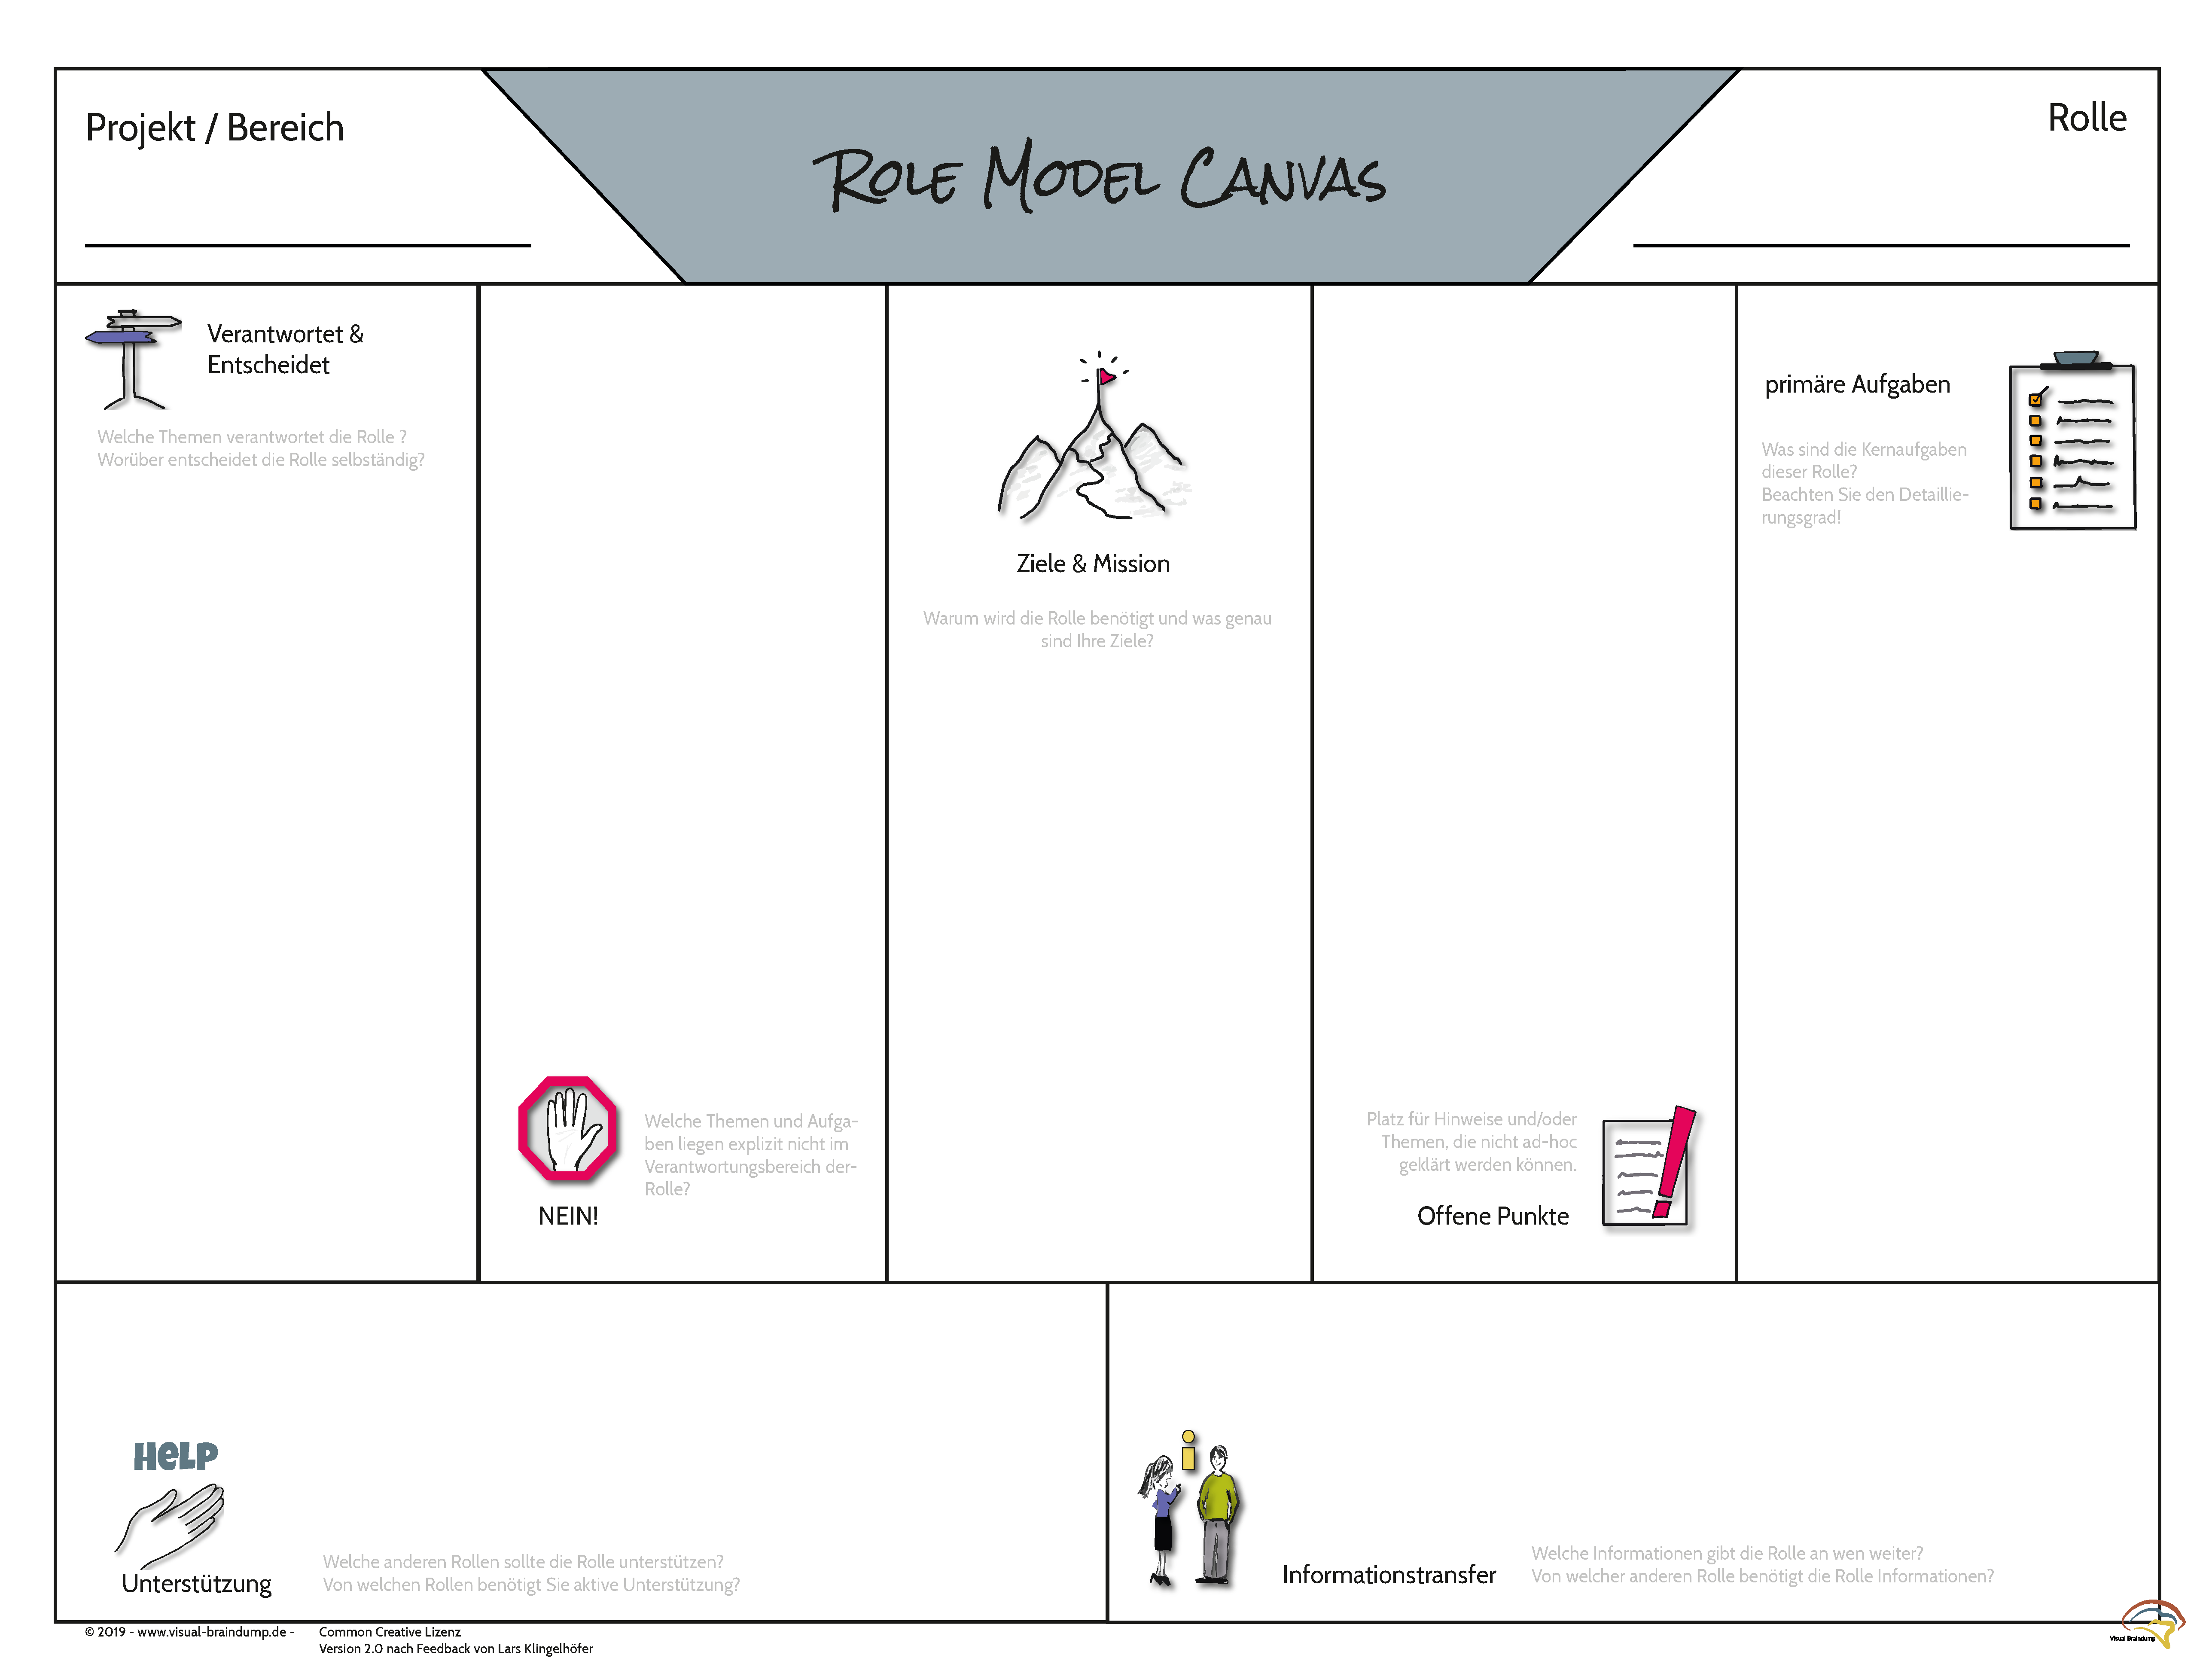 Role Model Canvas 2.0